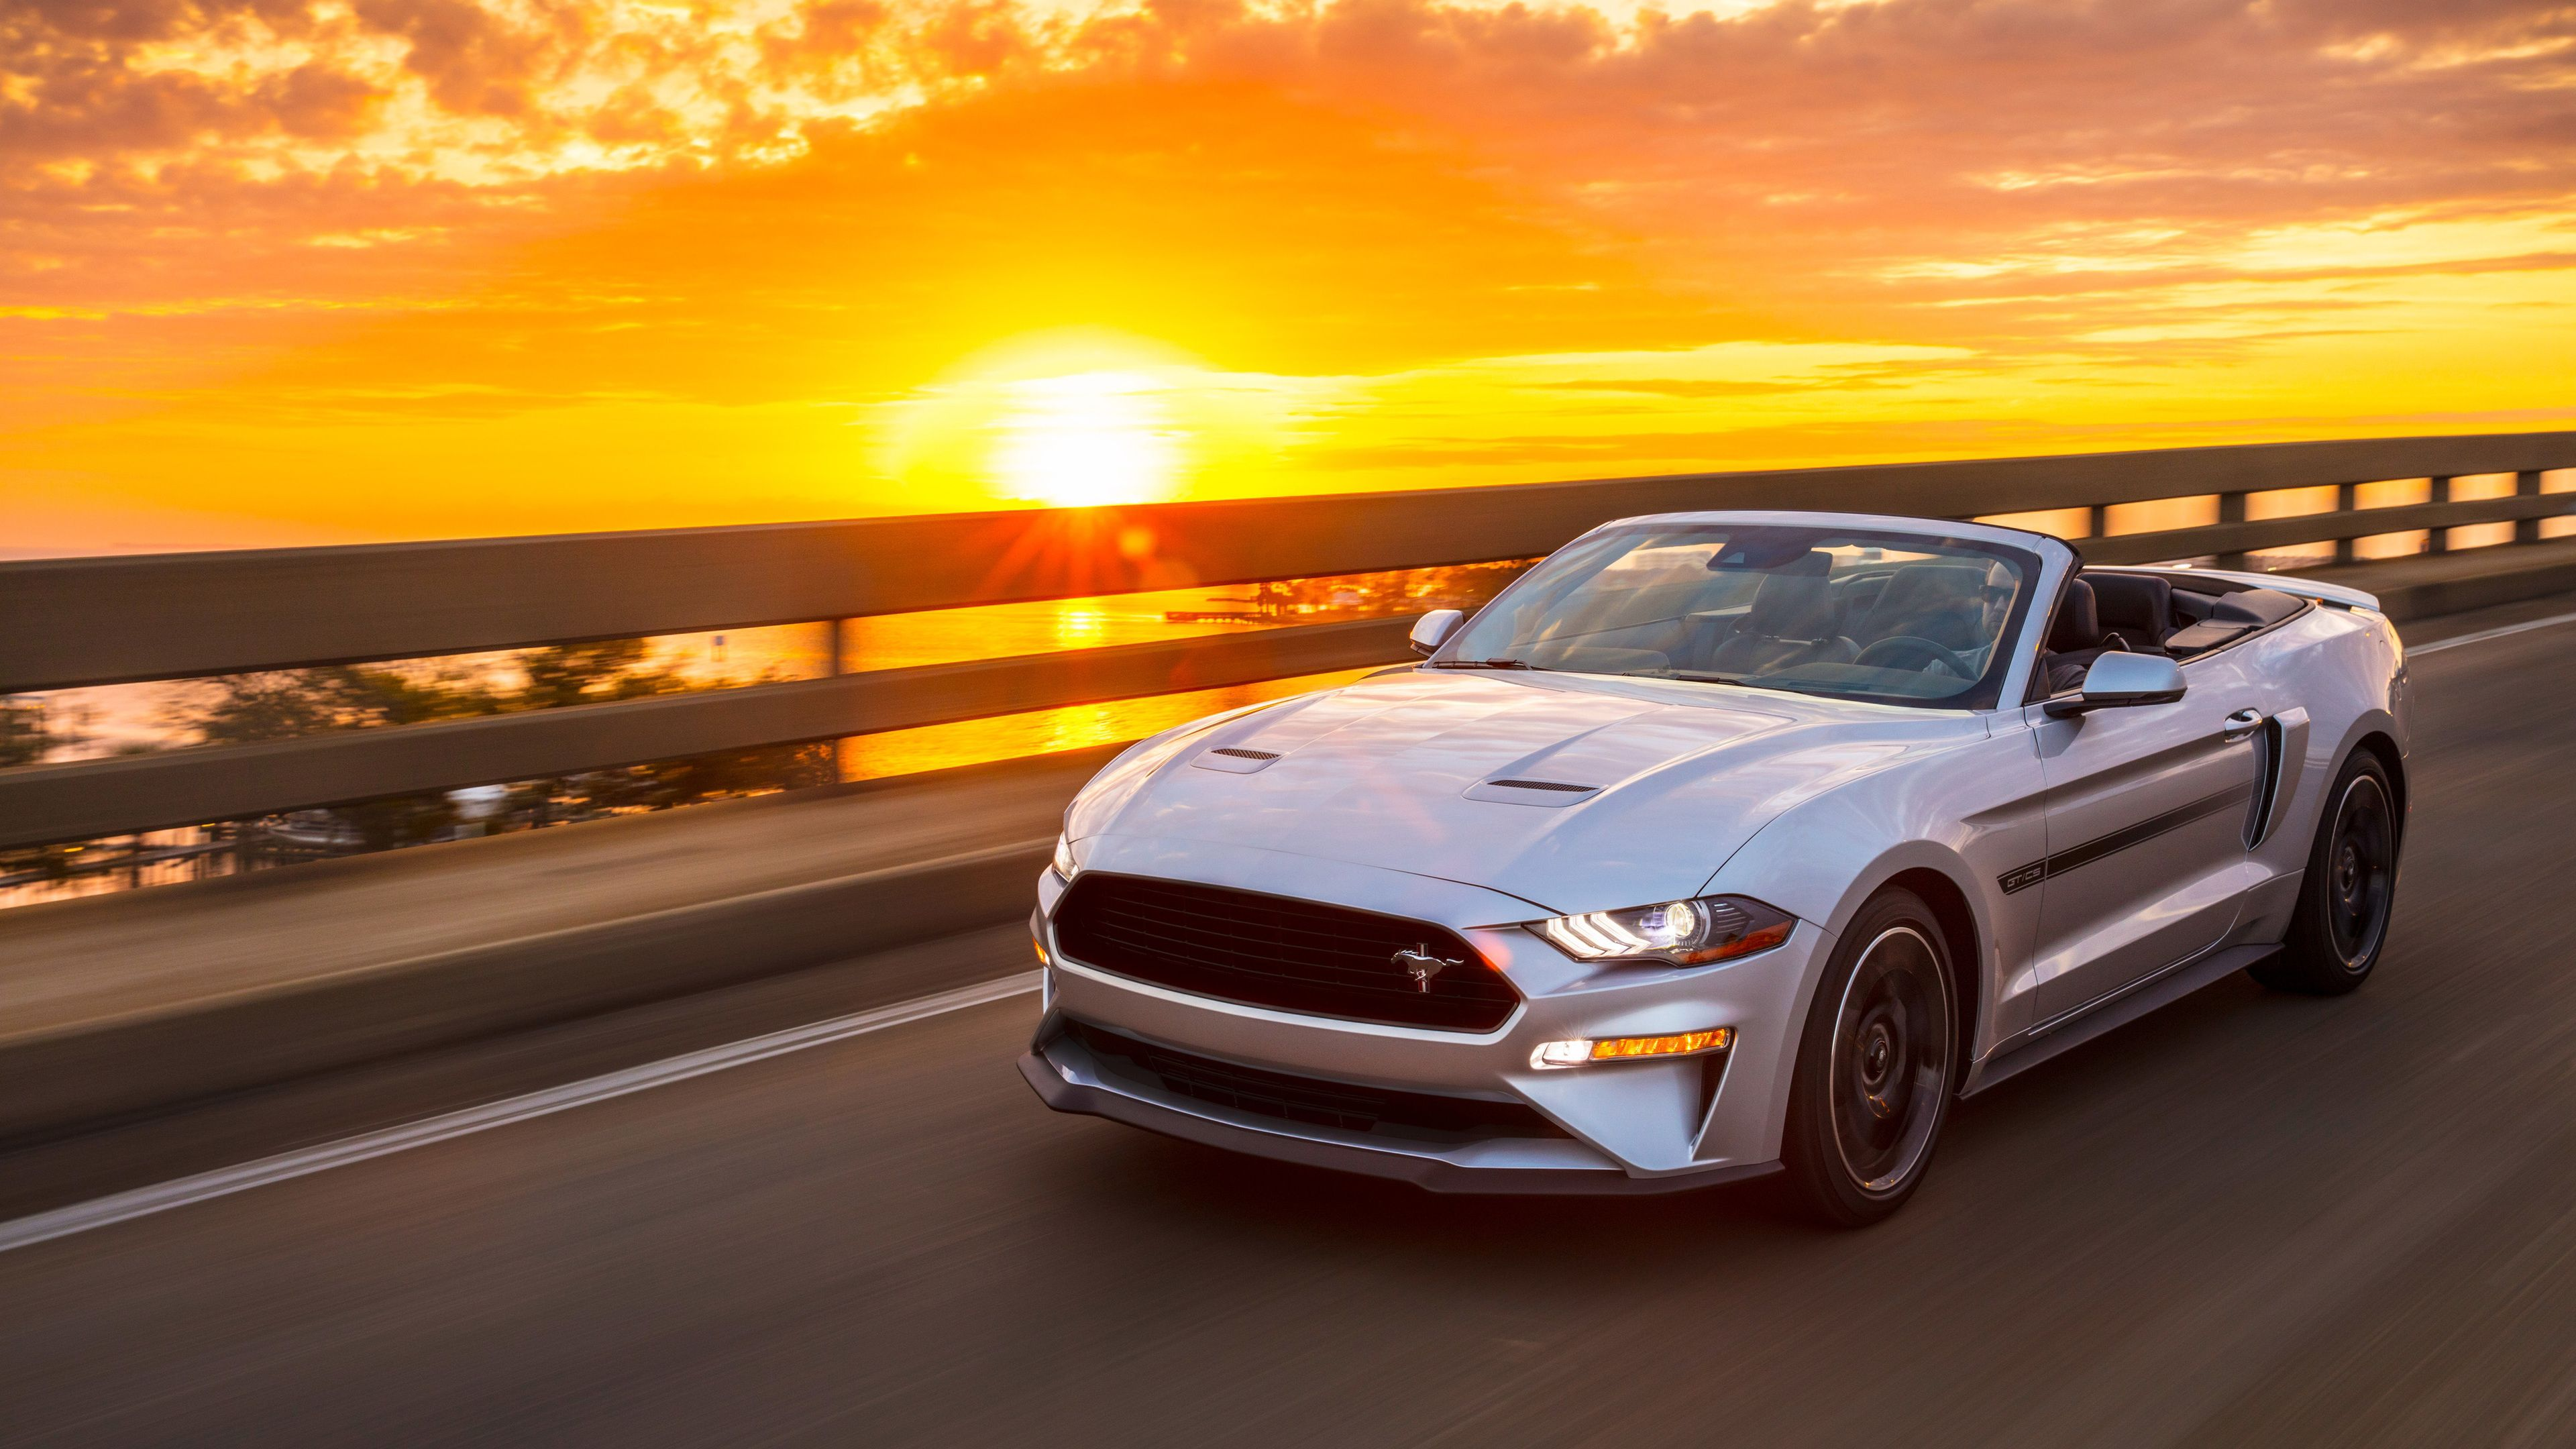 Ford Mustang Gt Convertible 2019 Mustang Wallpapers Hd Wallpapers